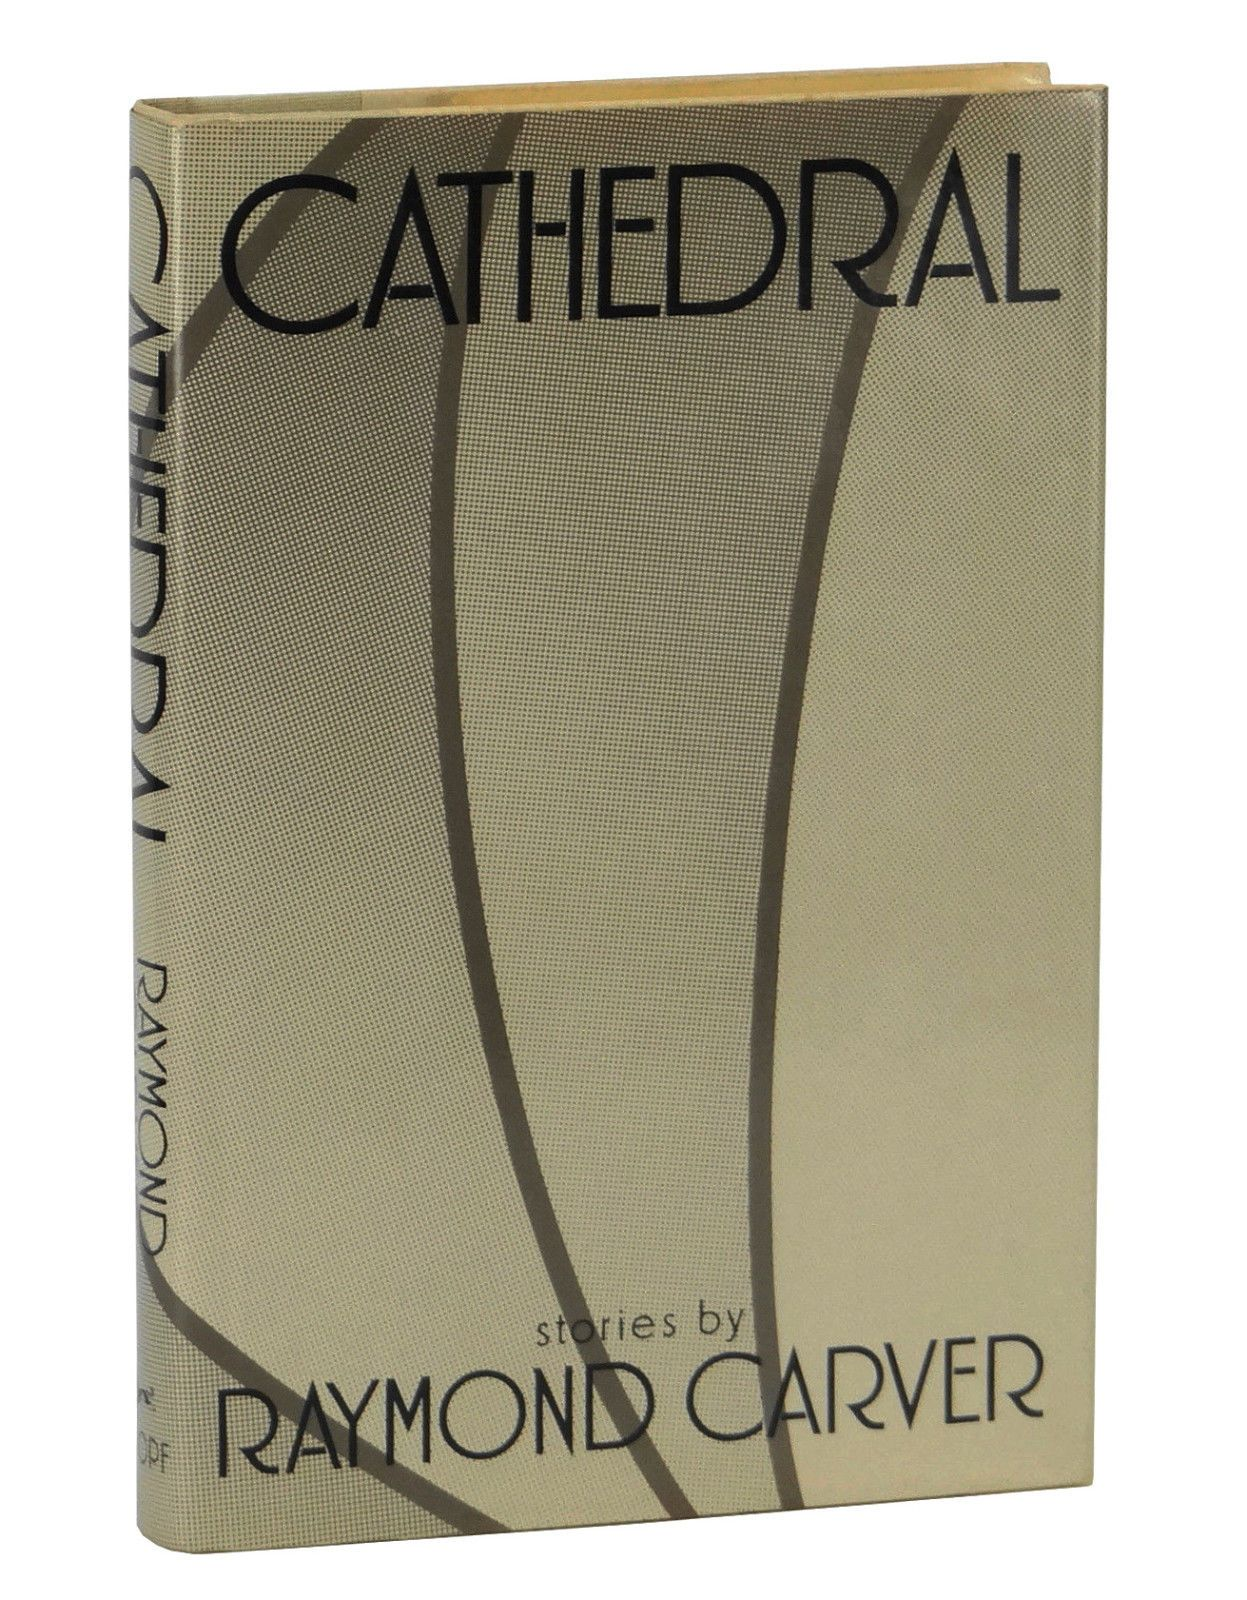 cathedral raymond carver theme